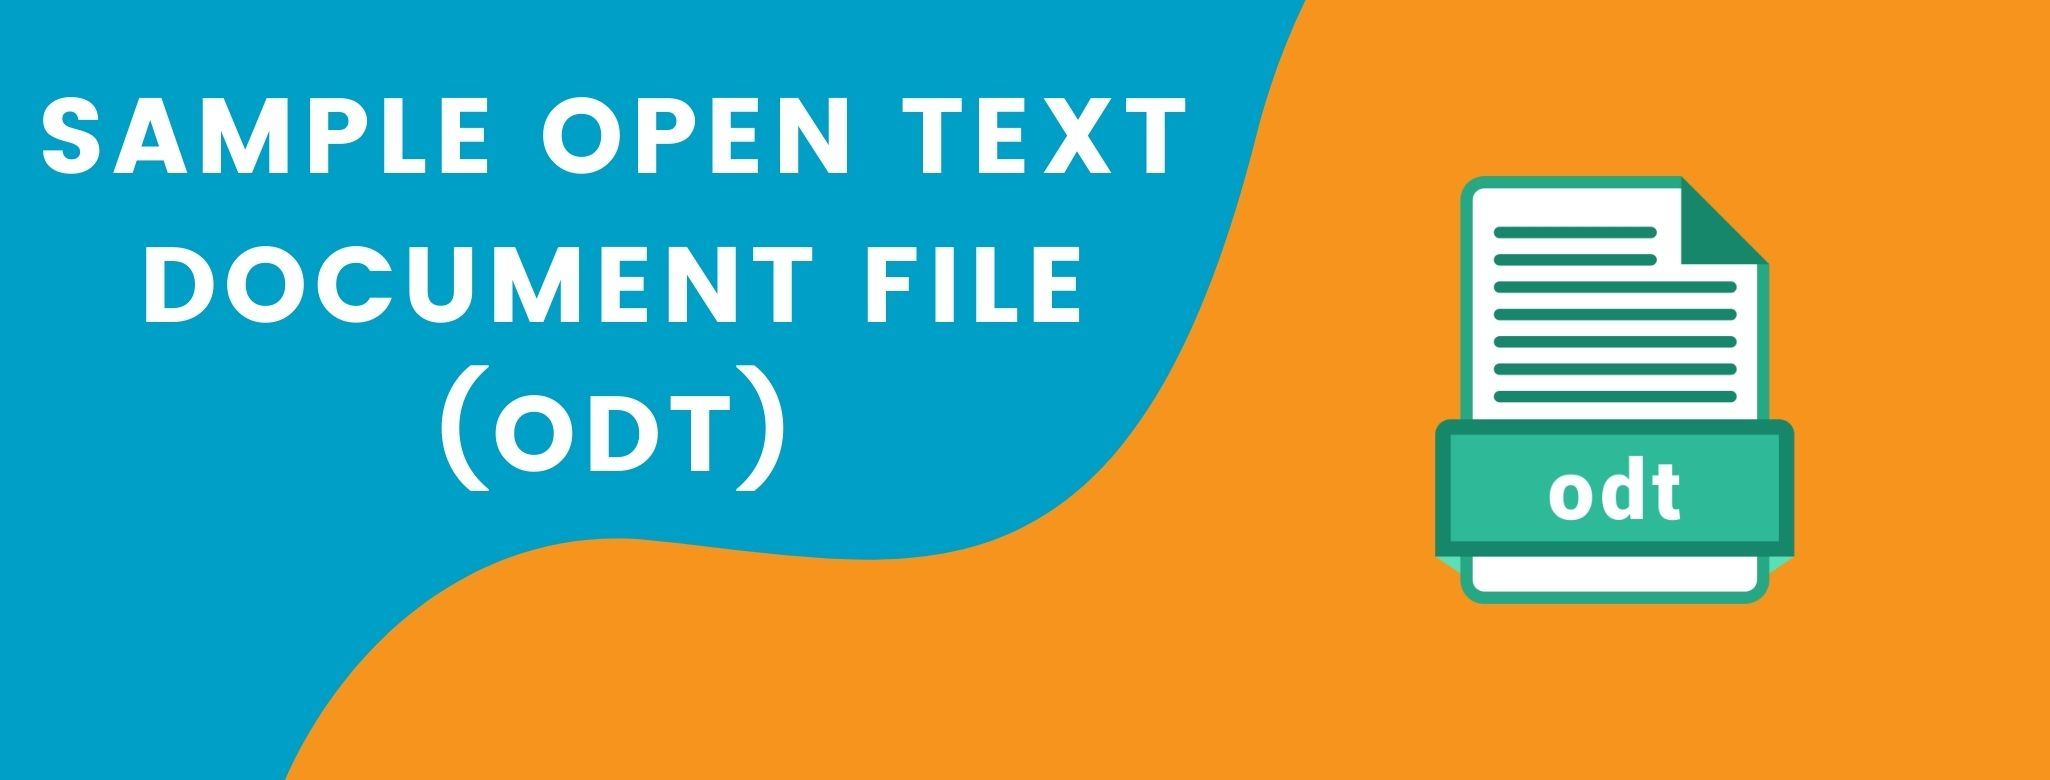 Sample Open Text Document Files